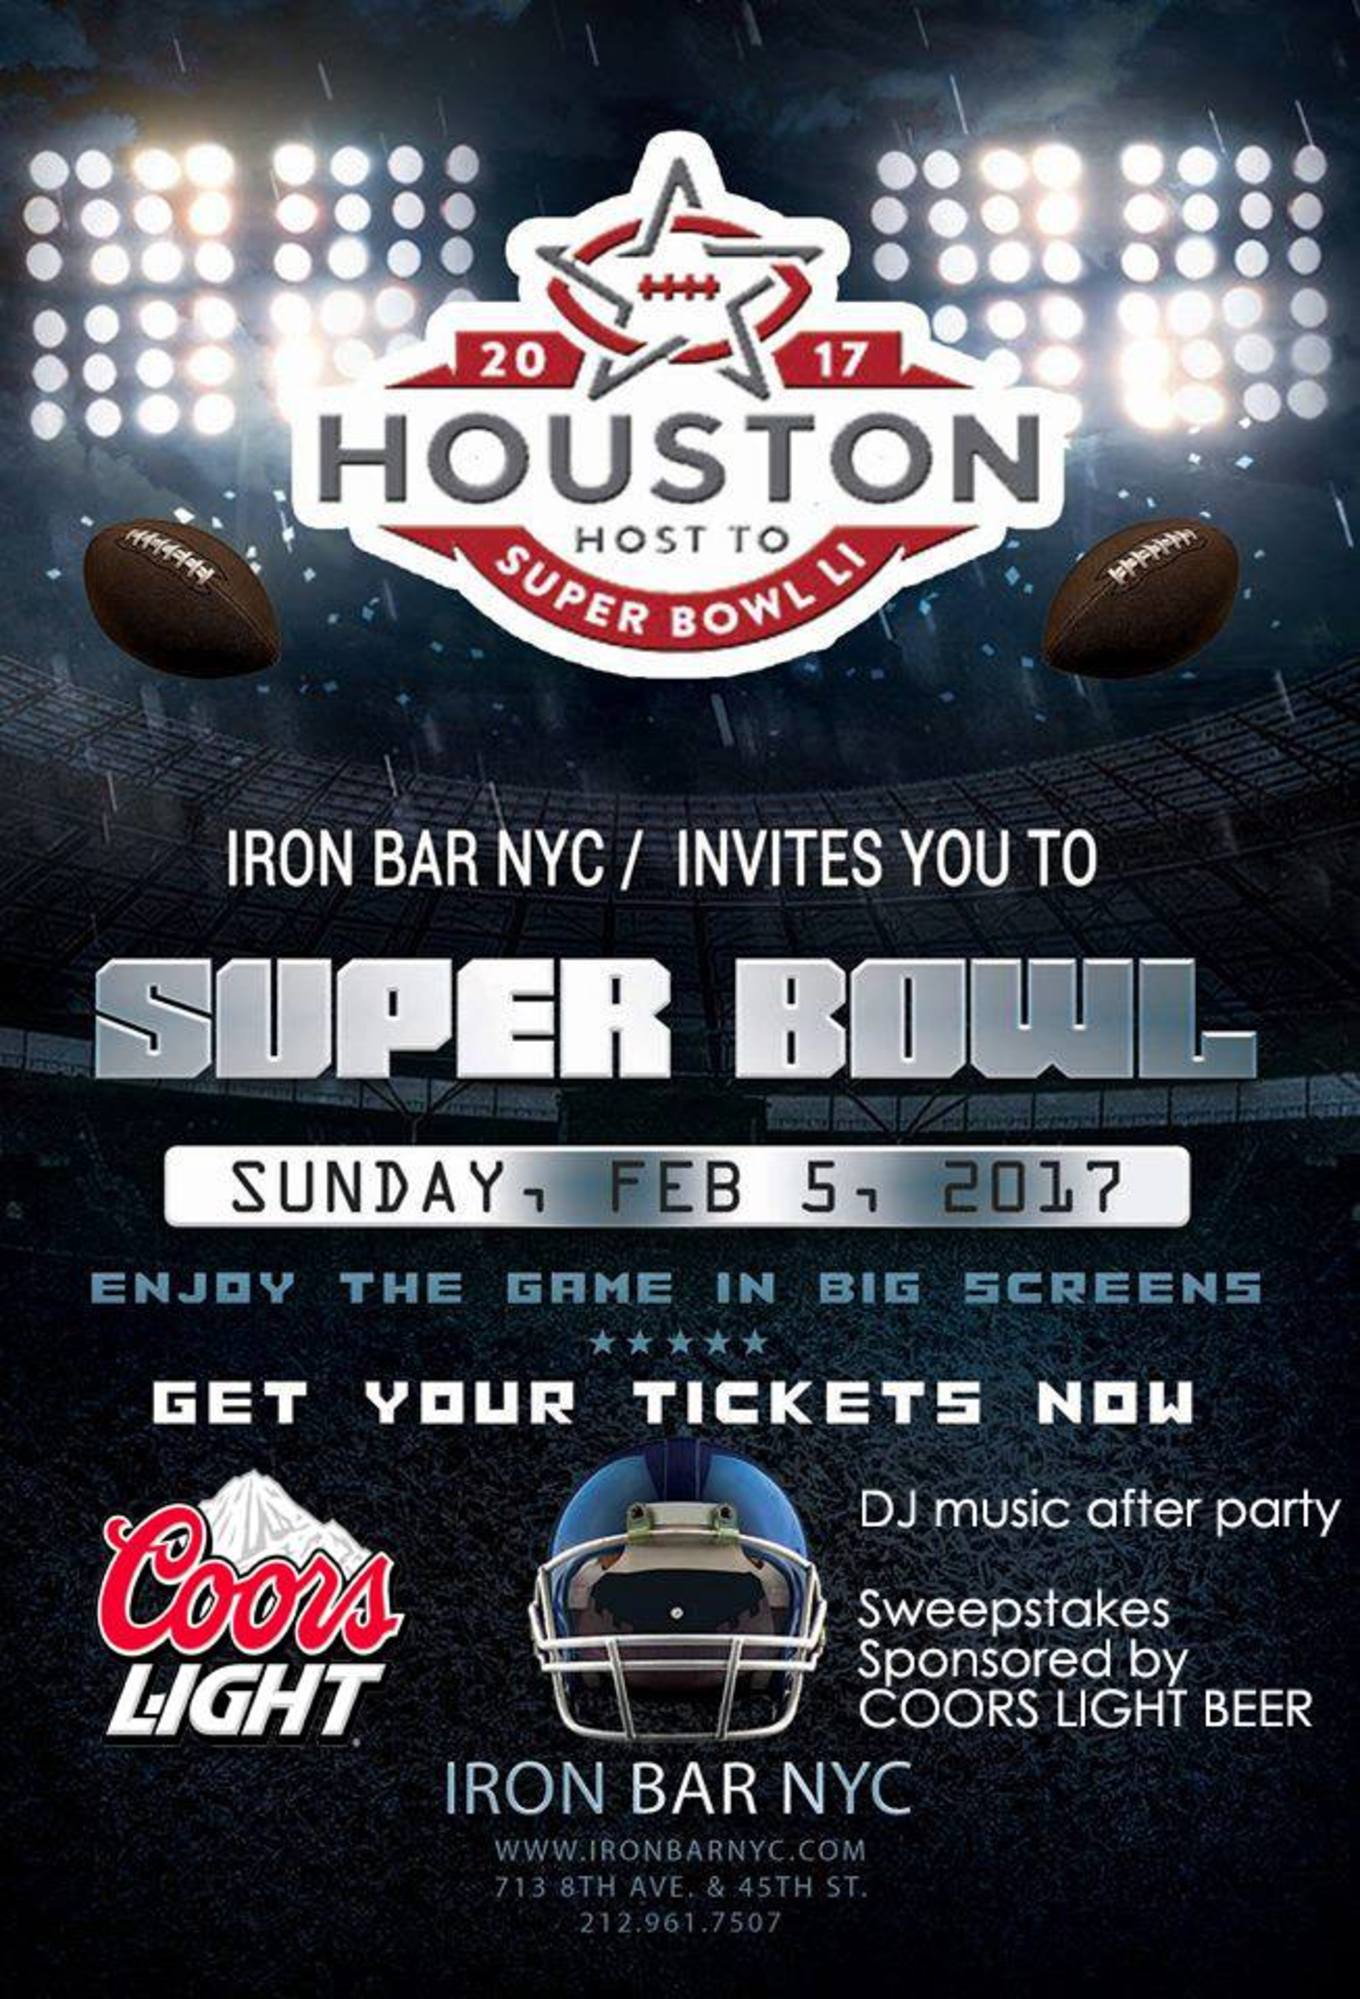 Super Bowl 2017 Sponsored by COORS LIGHT - Tickets - IRON